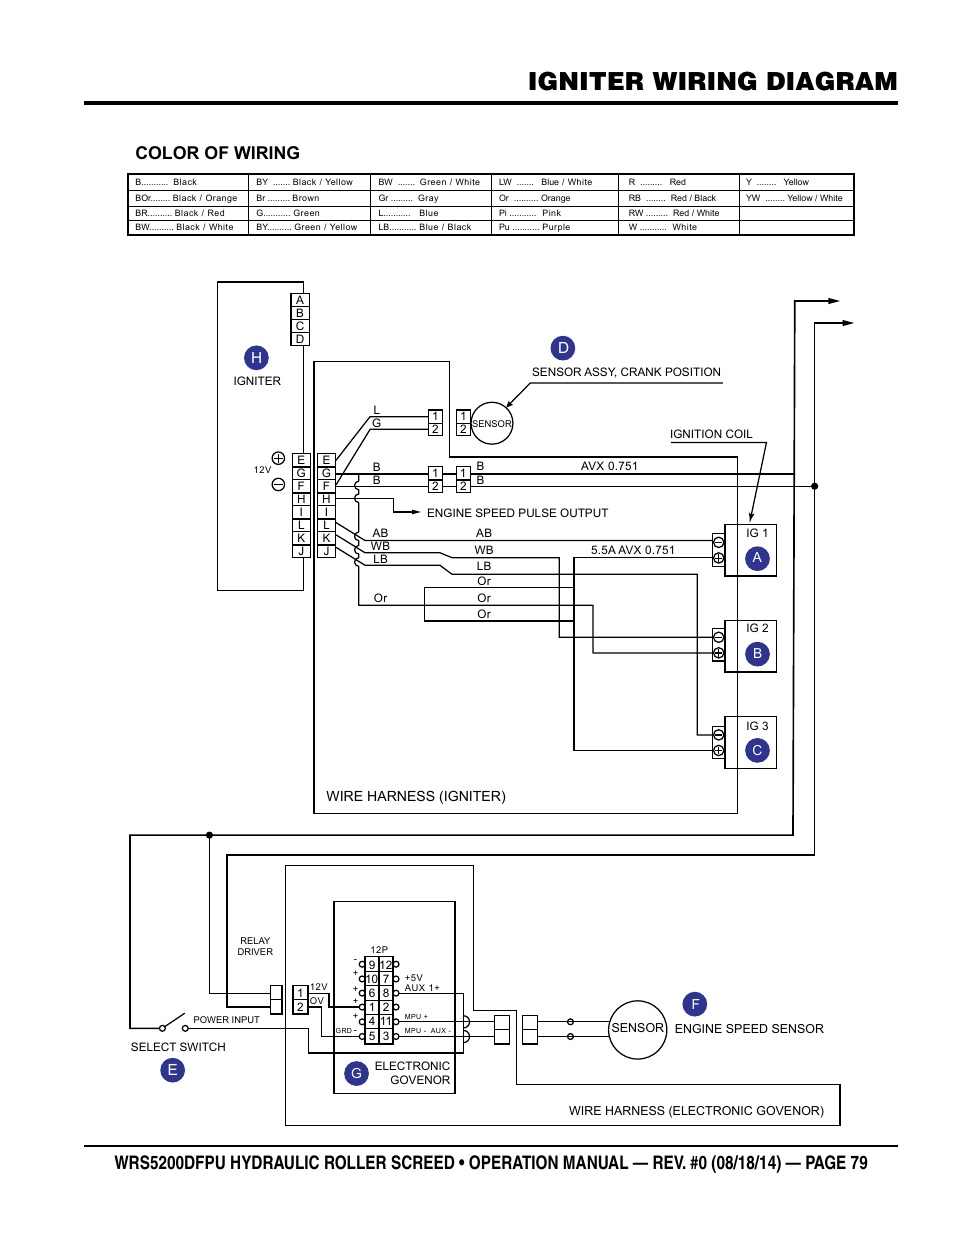 connection diagram olympian generator. olympian generator wiring diagram  4001e free wiring diagram. olympian generator wiring diagram. wiring diagram  for genset cat olympian d200p4 model 2001. stamford generator wiring  diagram wiring forums. generator  a.2002-acura-tl-radio.info. all rights reserved.